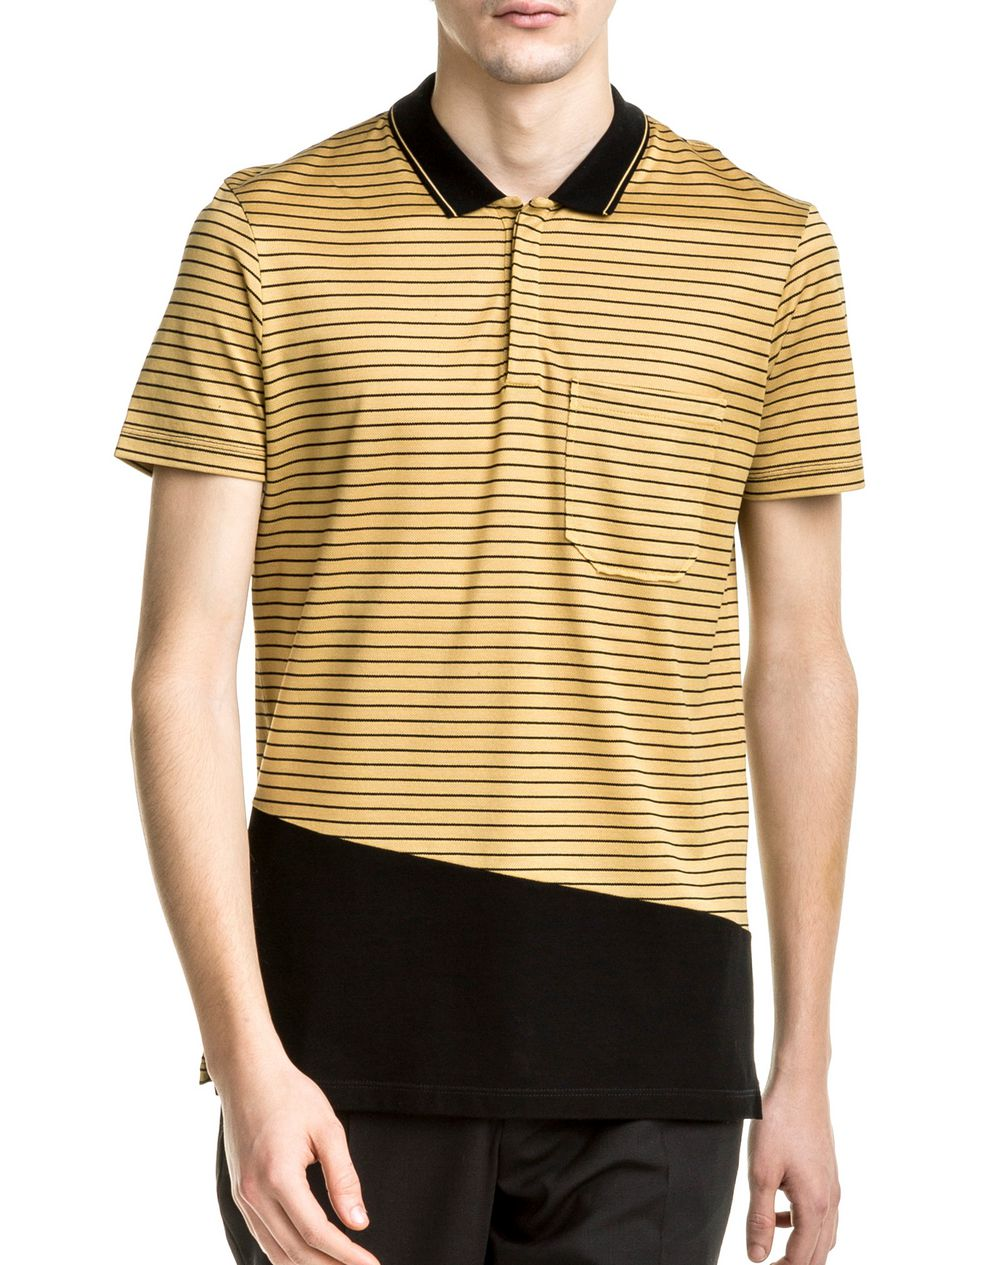 BLACK & YELLOW SLIM FIT POLO SHIRT